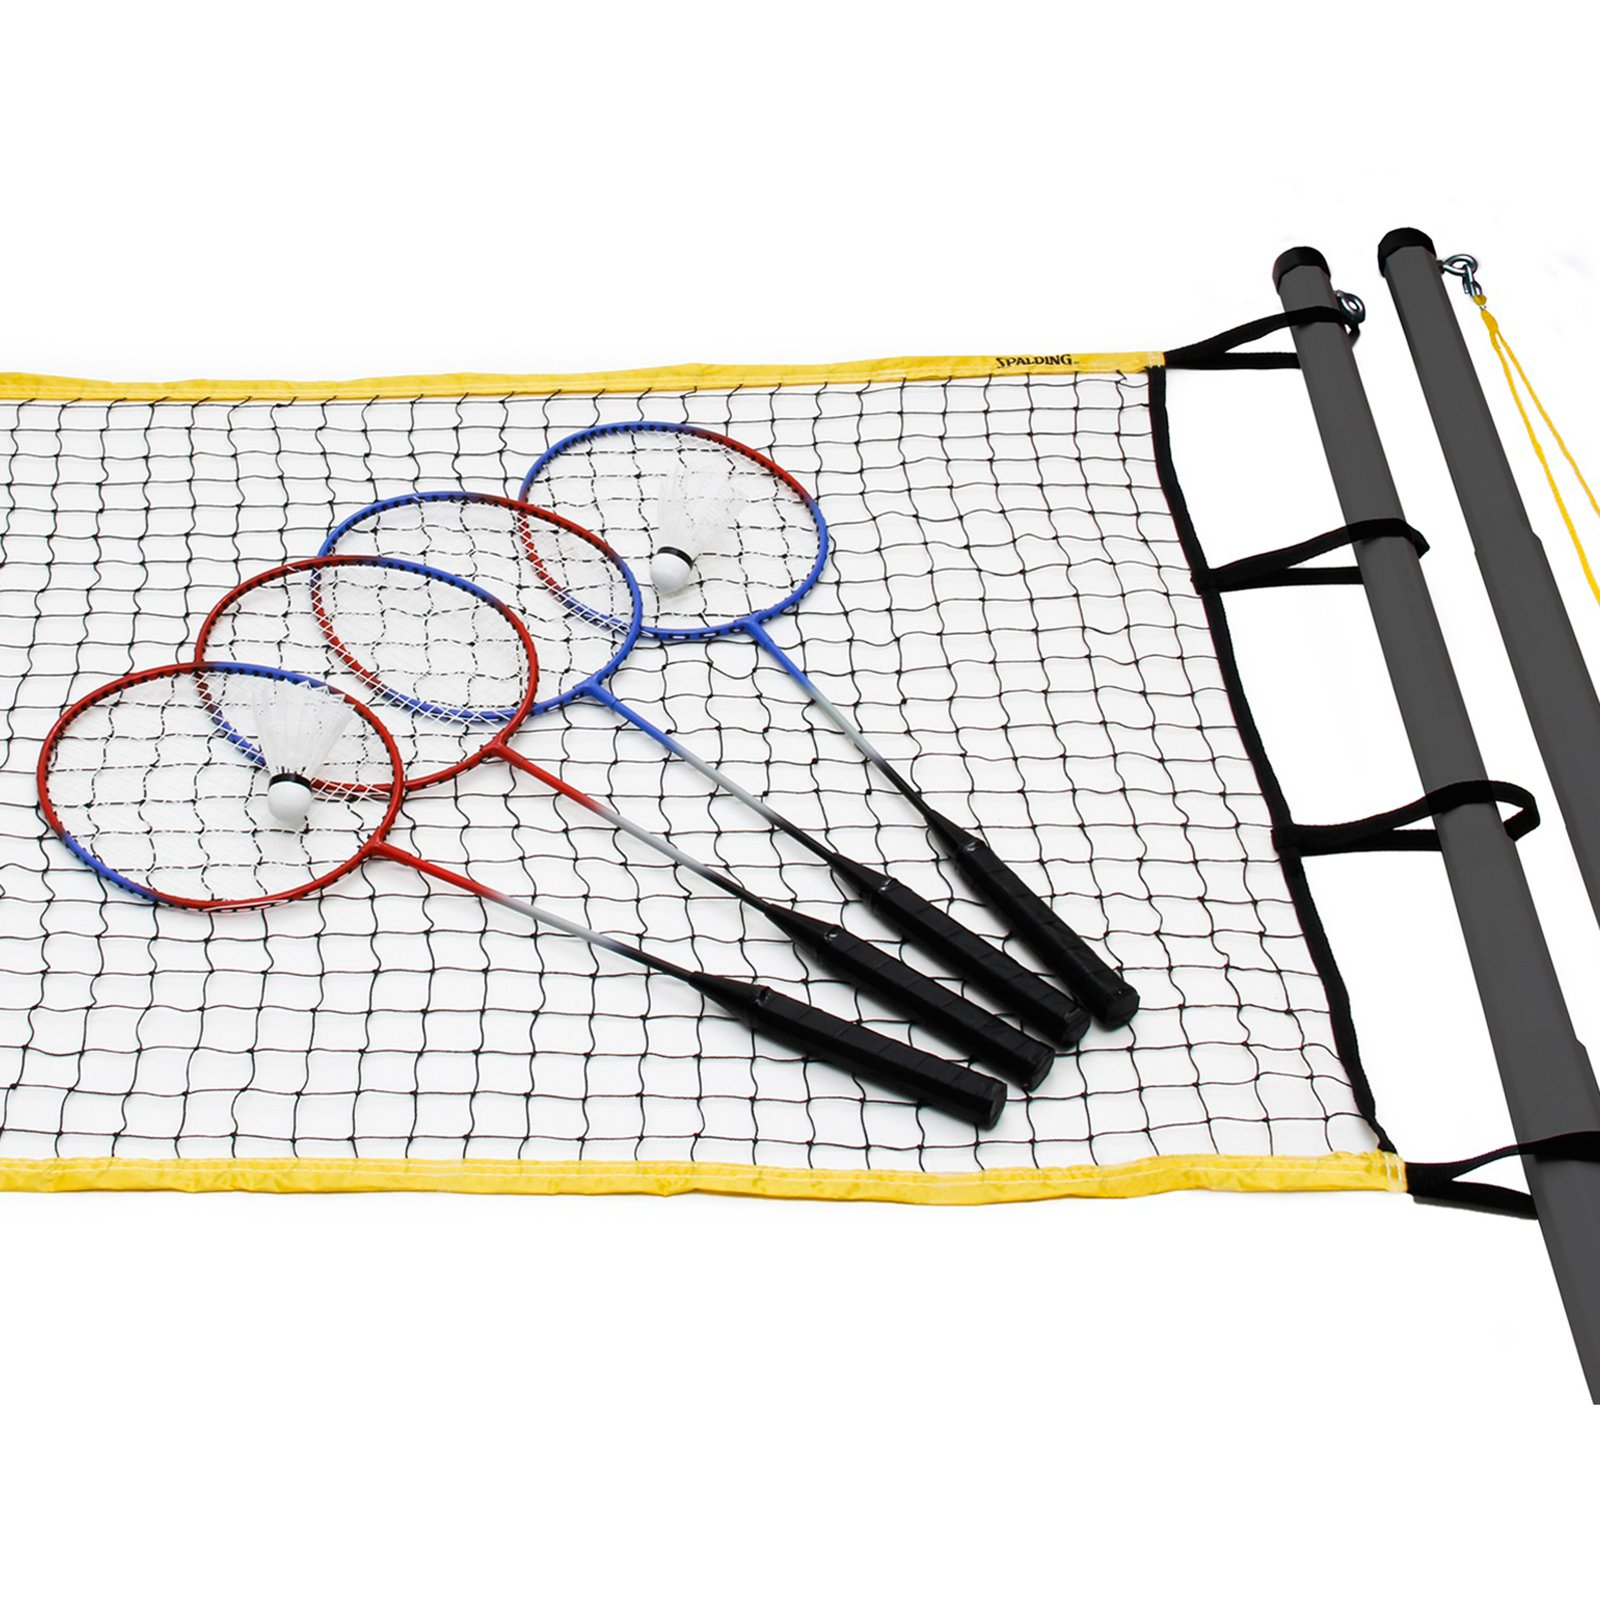 Spalding Recreational Badminton Set by Triumph Sports